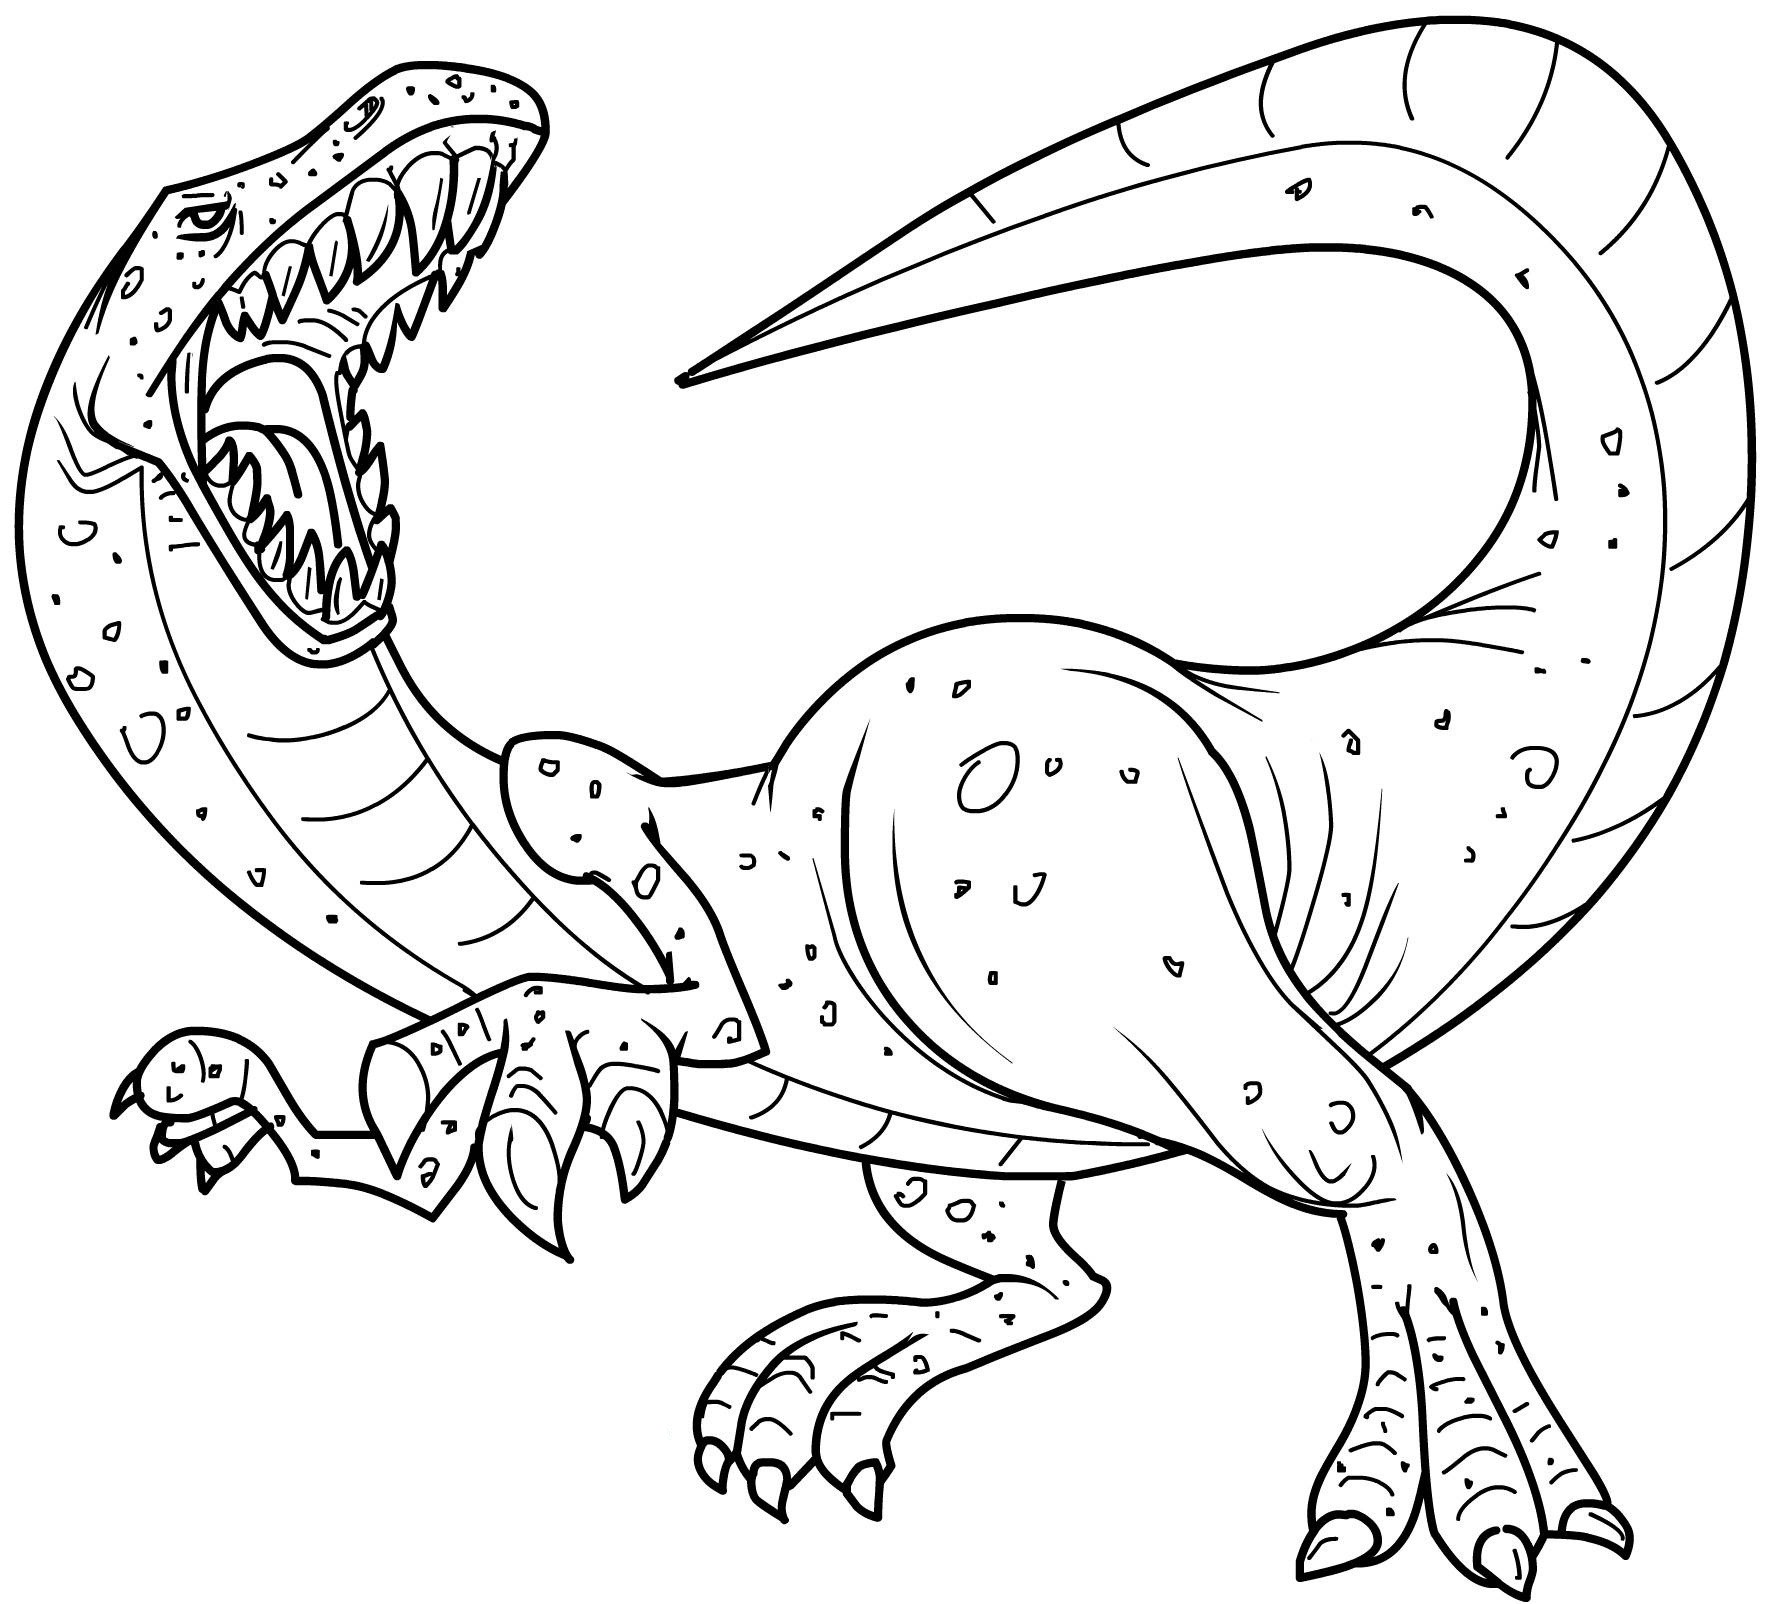 dinosaur coloring pages for kids coloring town dinosaur pages kids coloring for